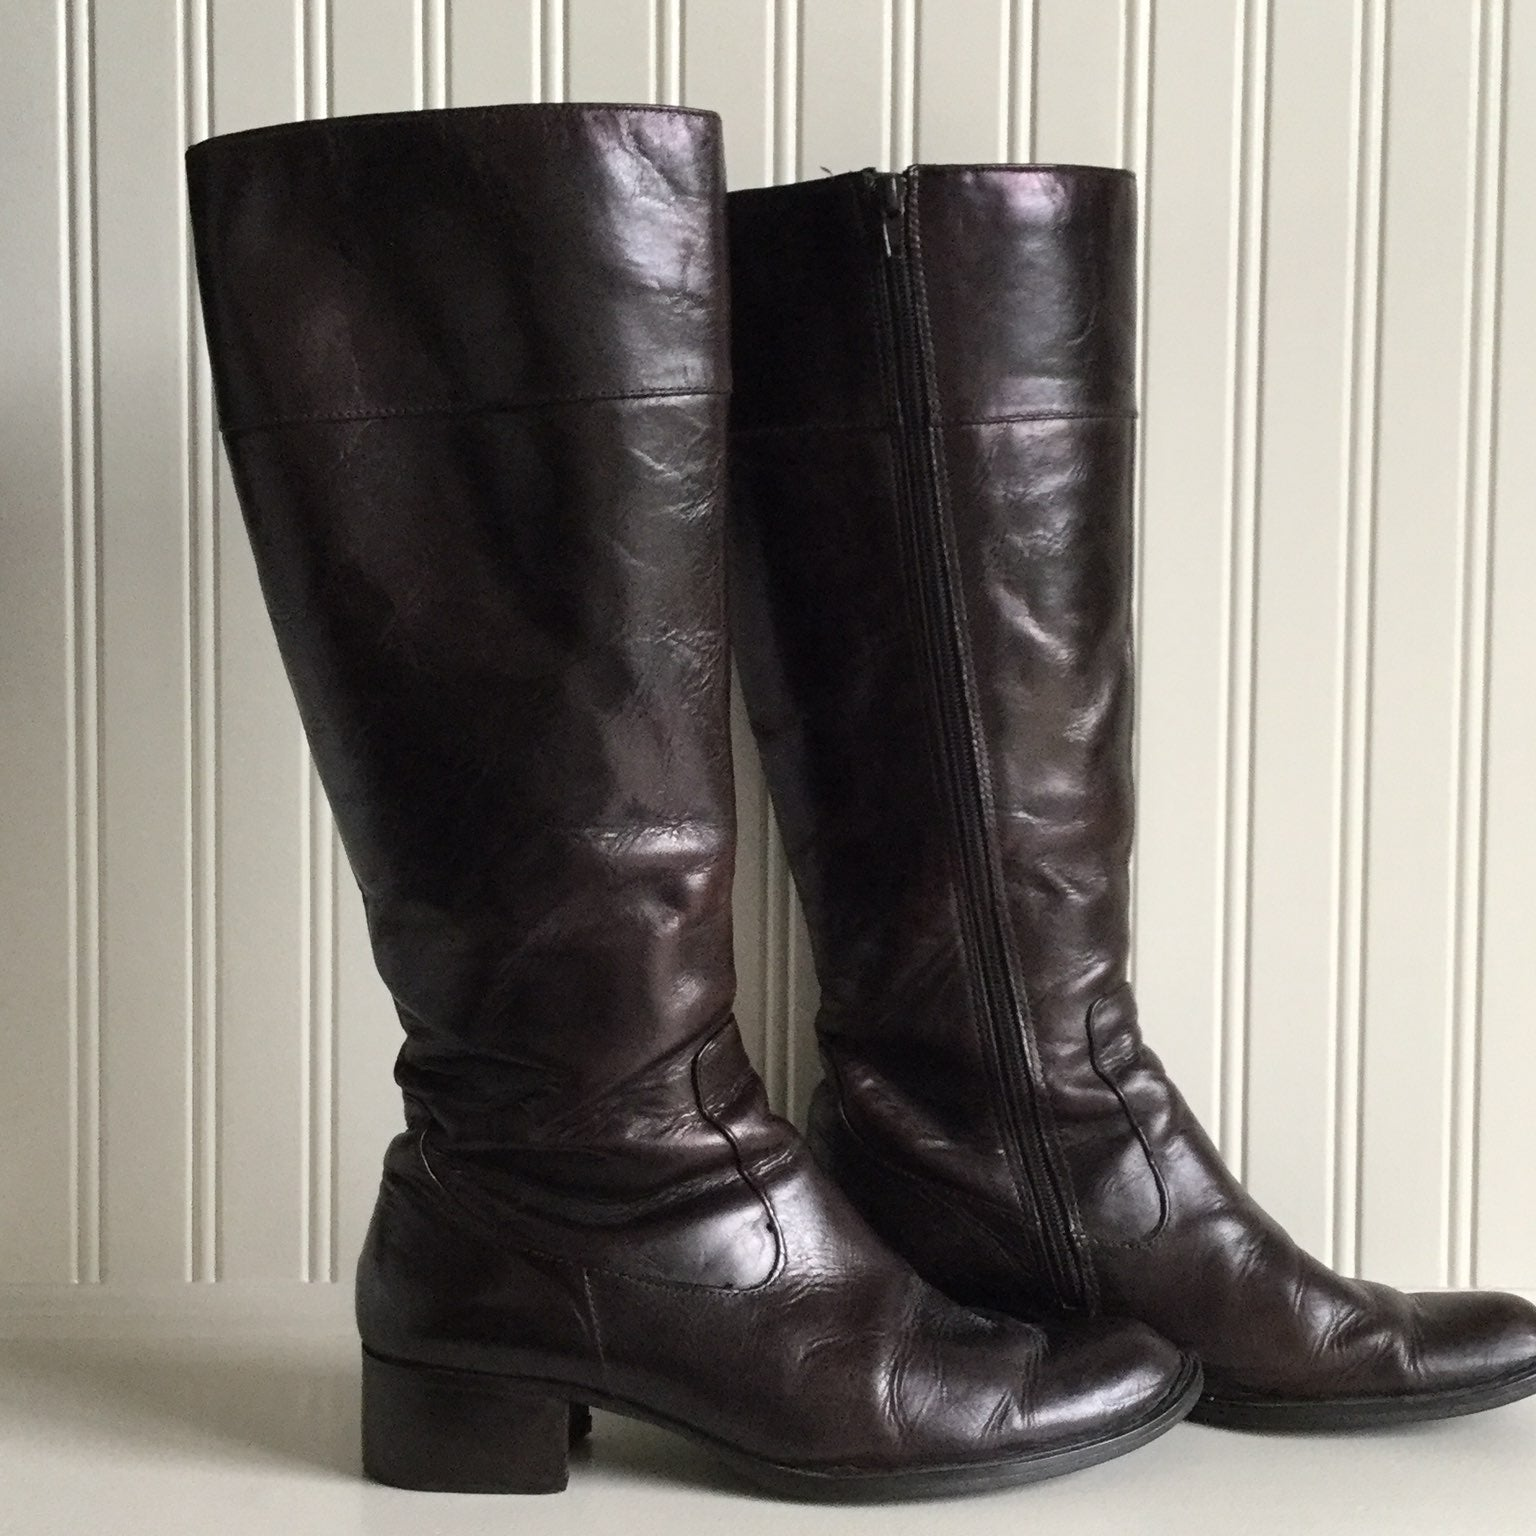 Born Boots Brown Size 8